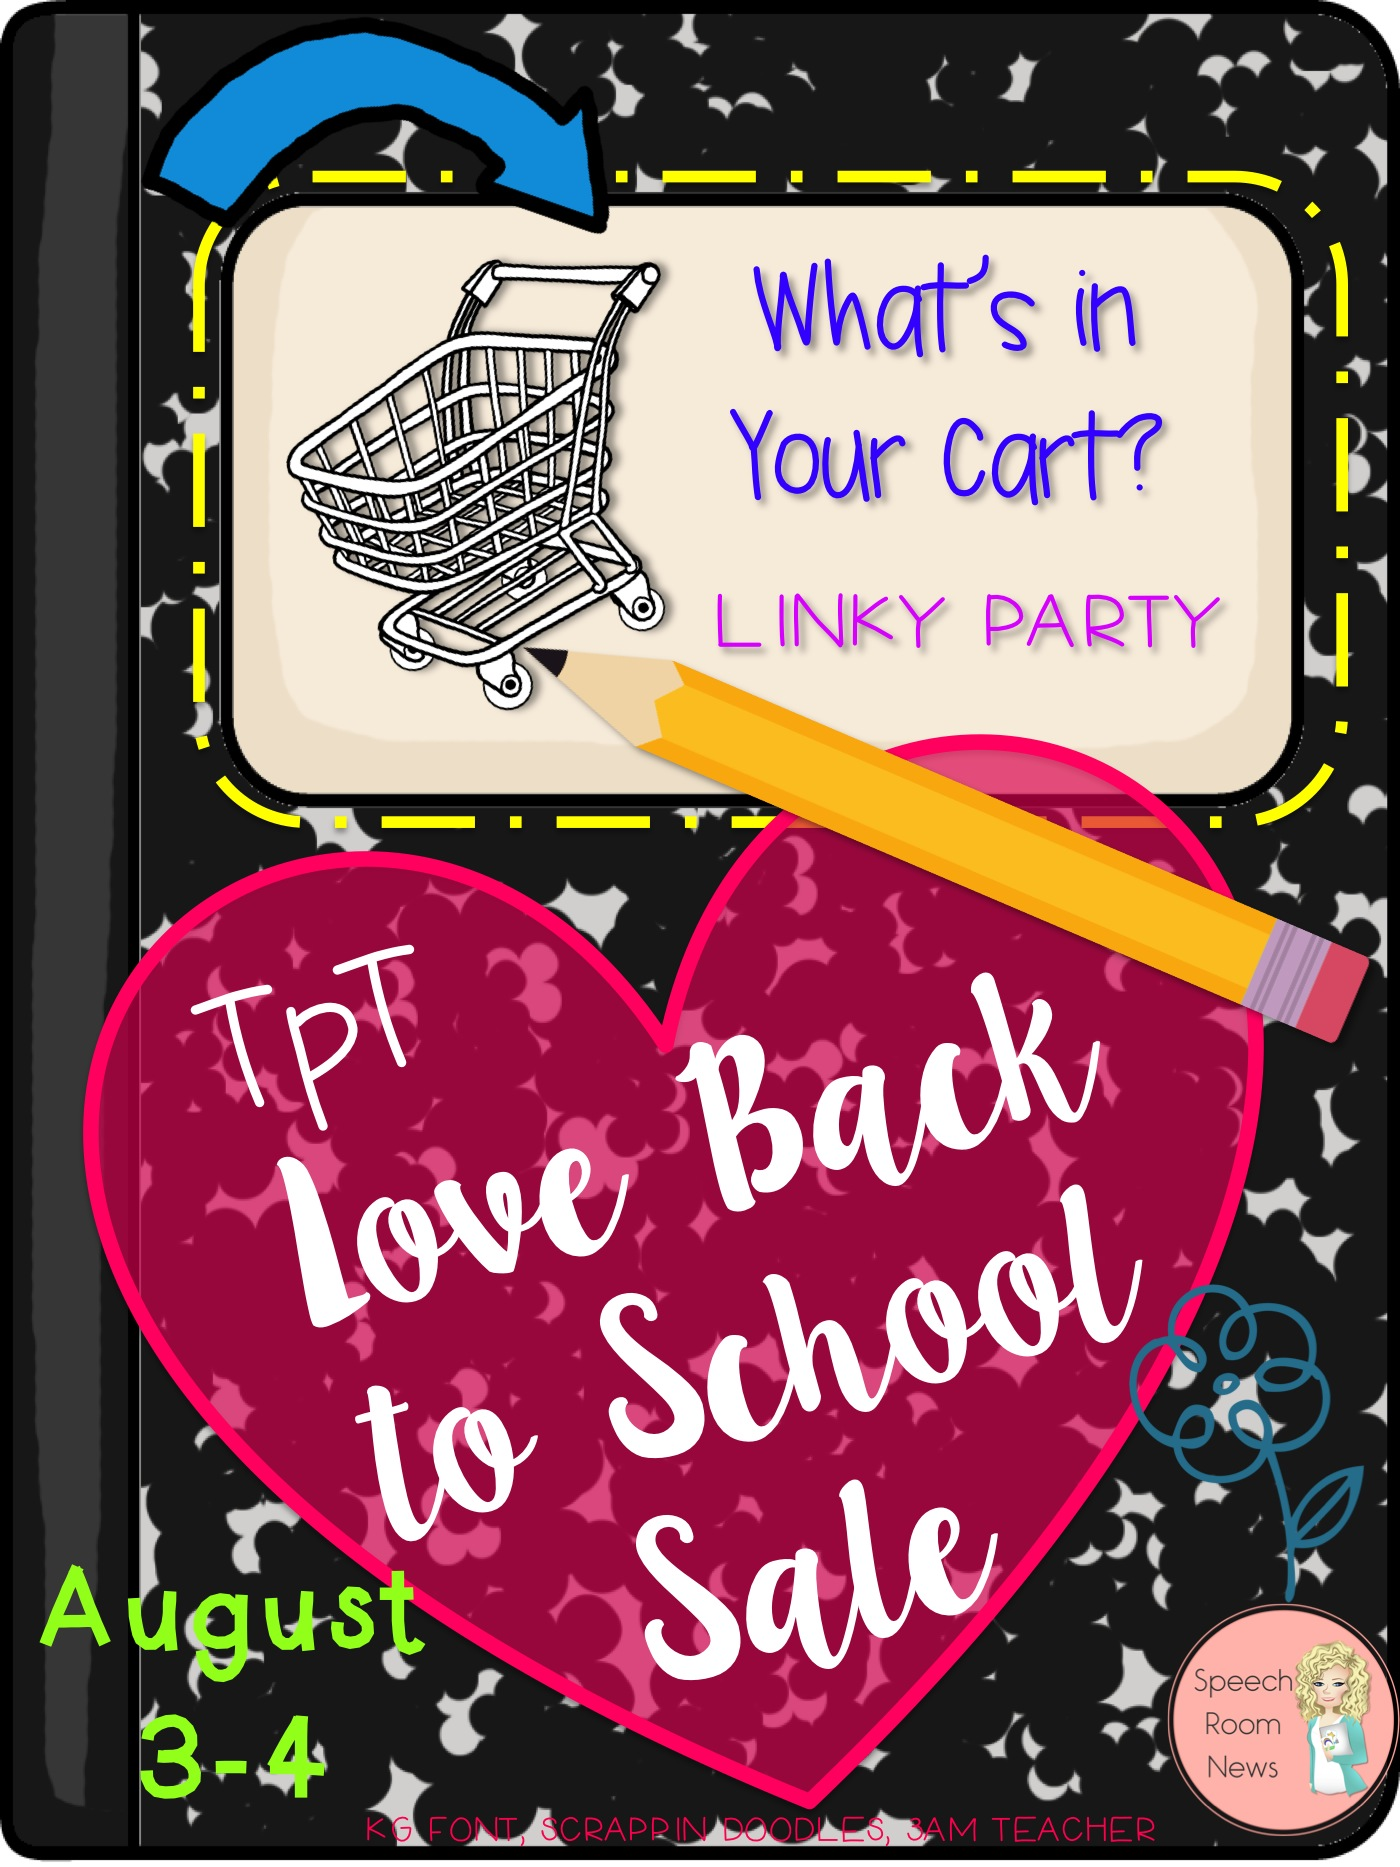 What's In My Cart? Back to School Sale!